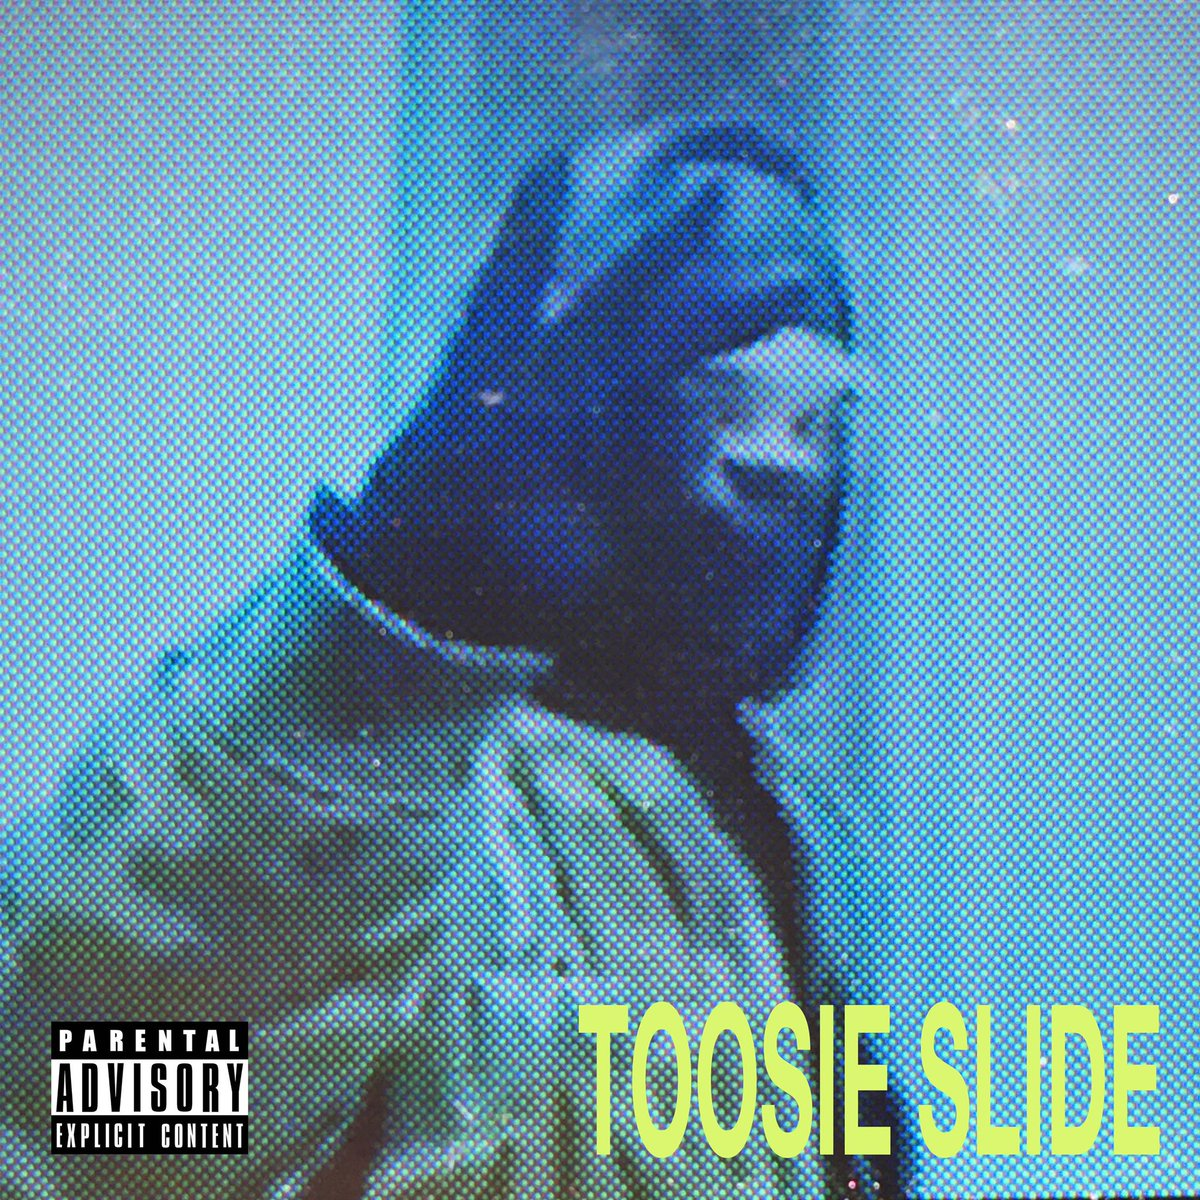 TOOSIE SLIDE https://t.co/JTDrEtJsjX https://t.co/JgDRAUM2SG